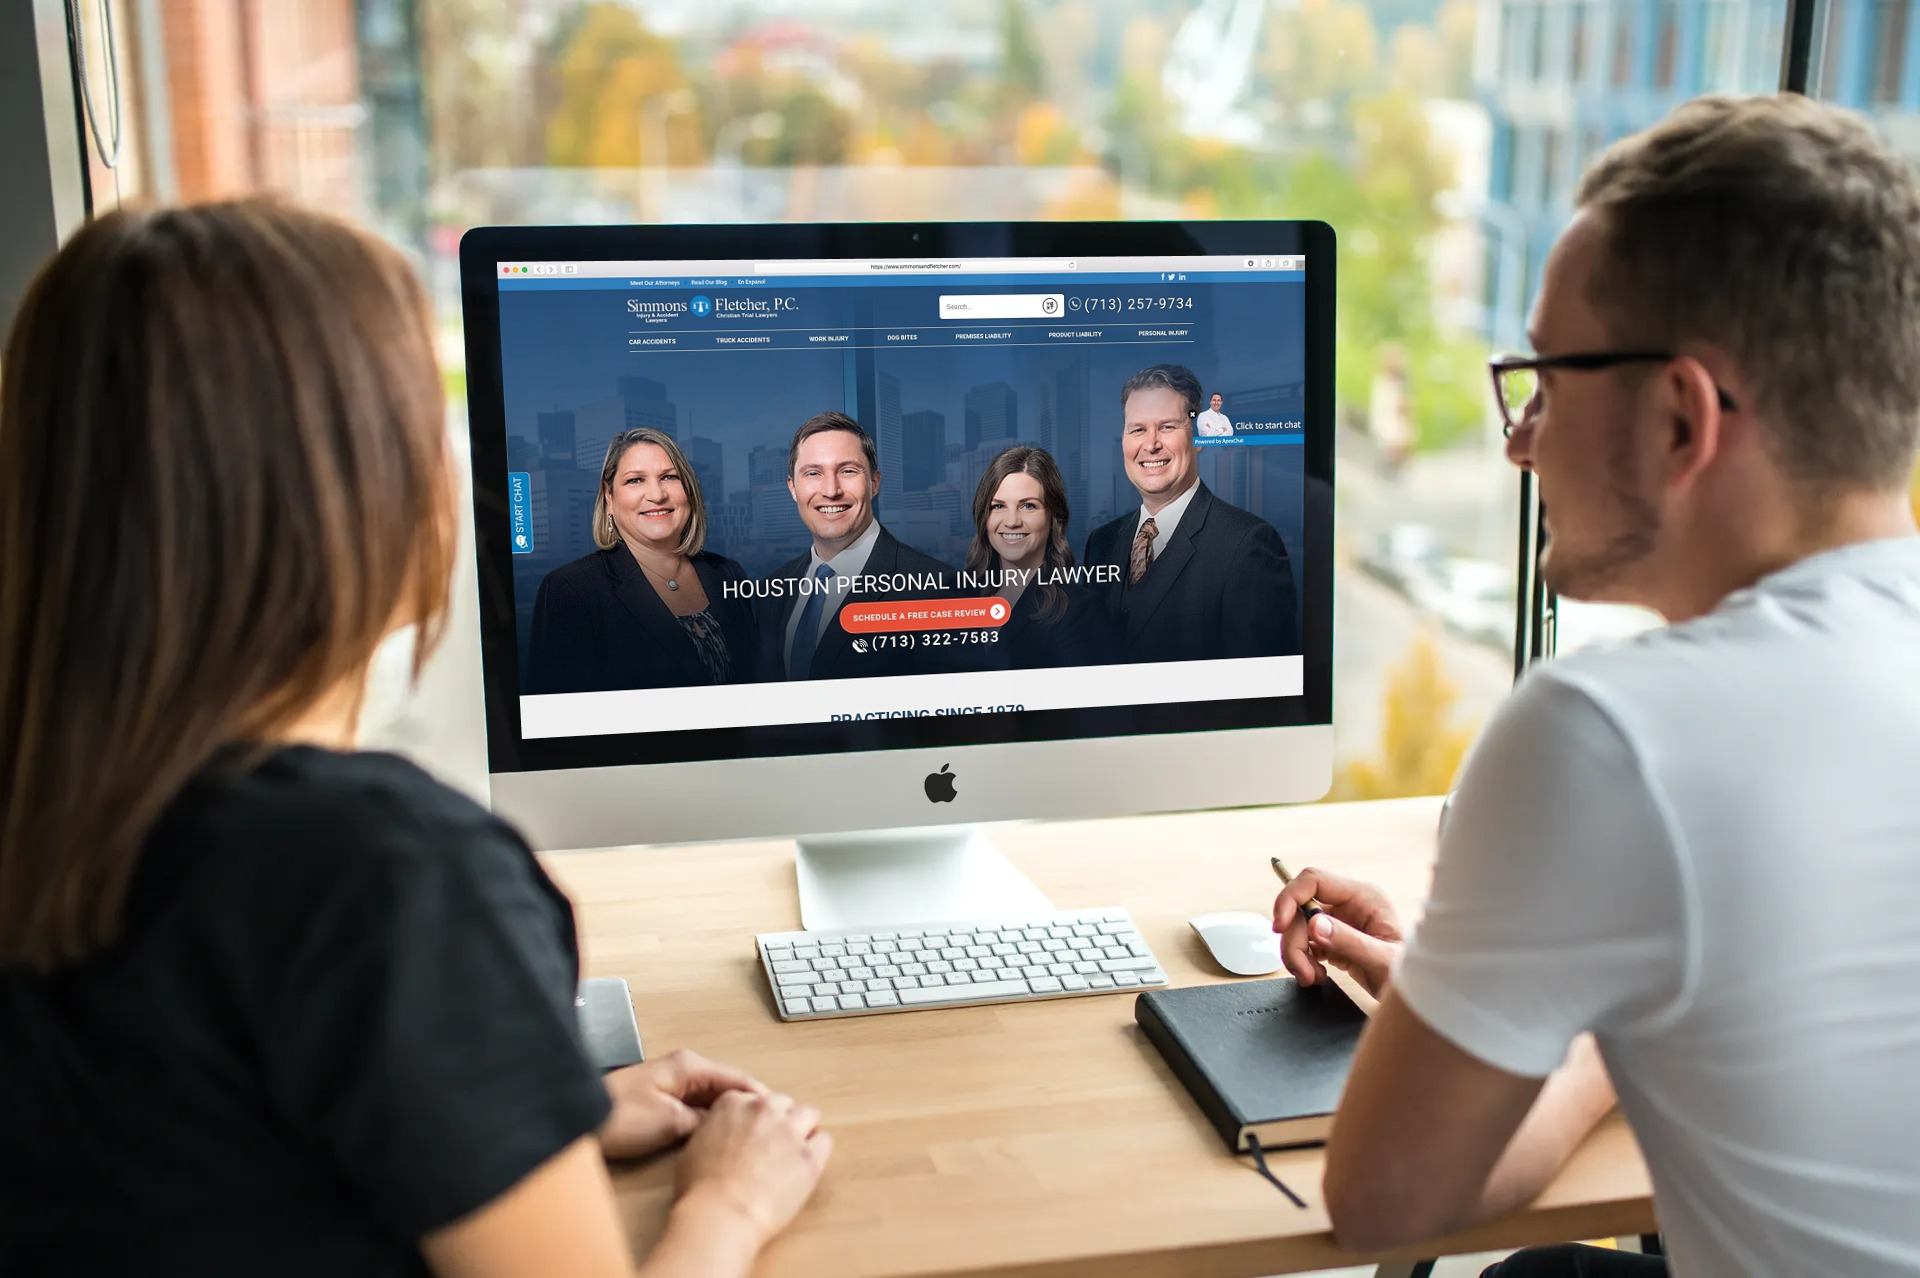 Simmons and Fletcher – Fastest SEO friendly website for our LAW client